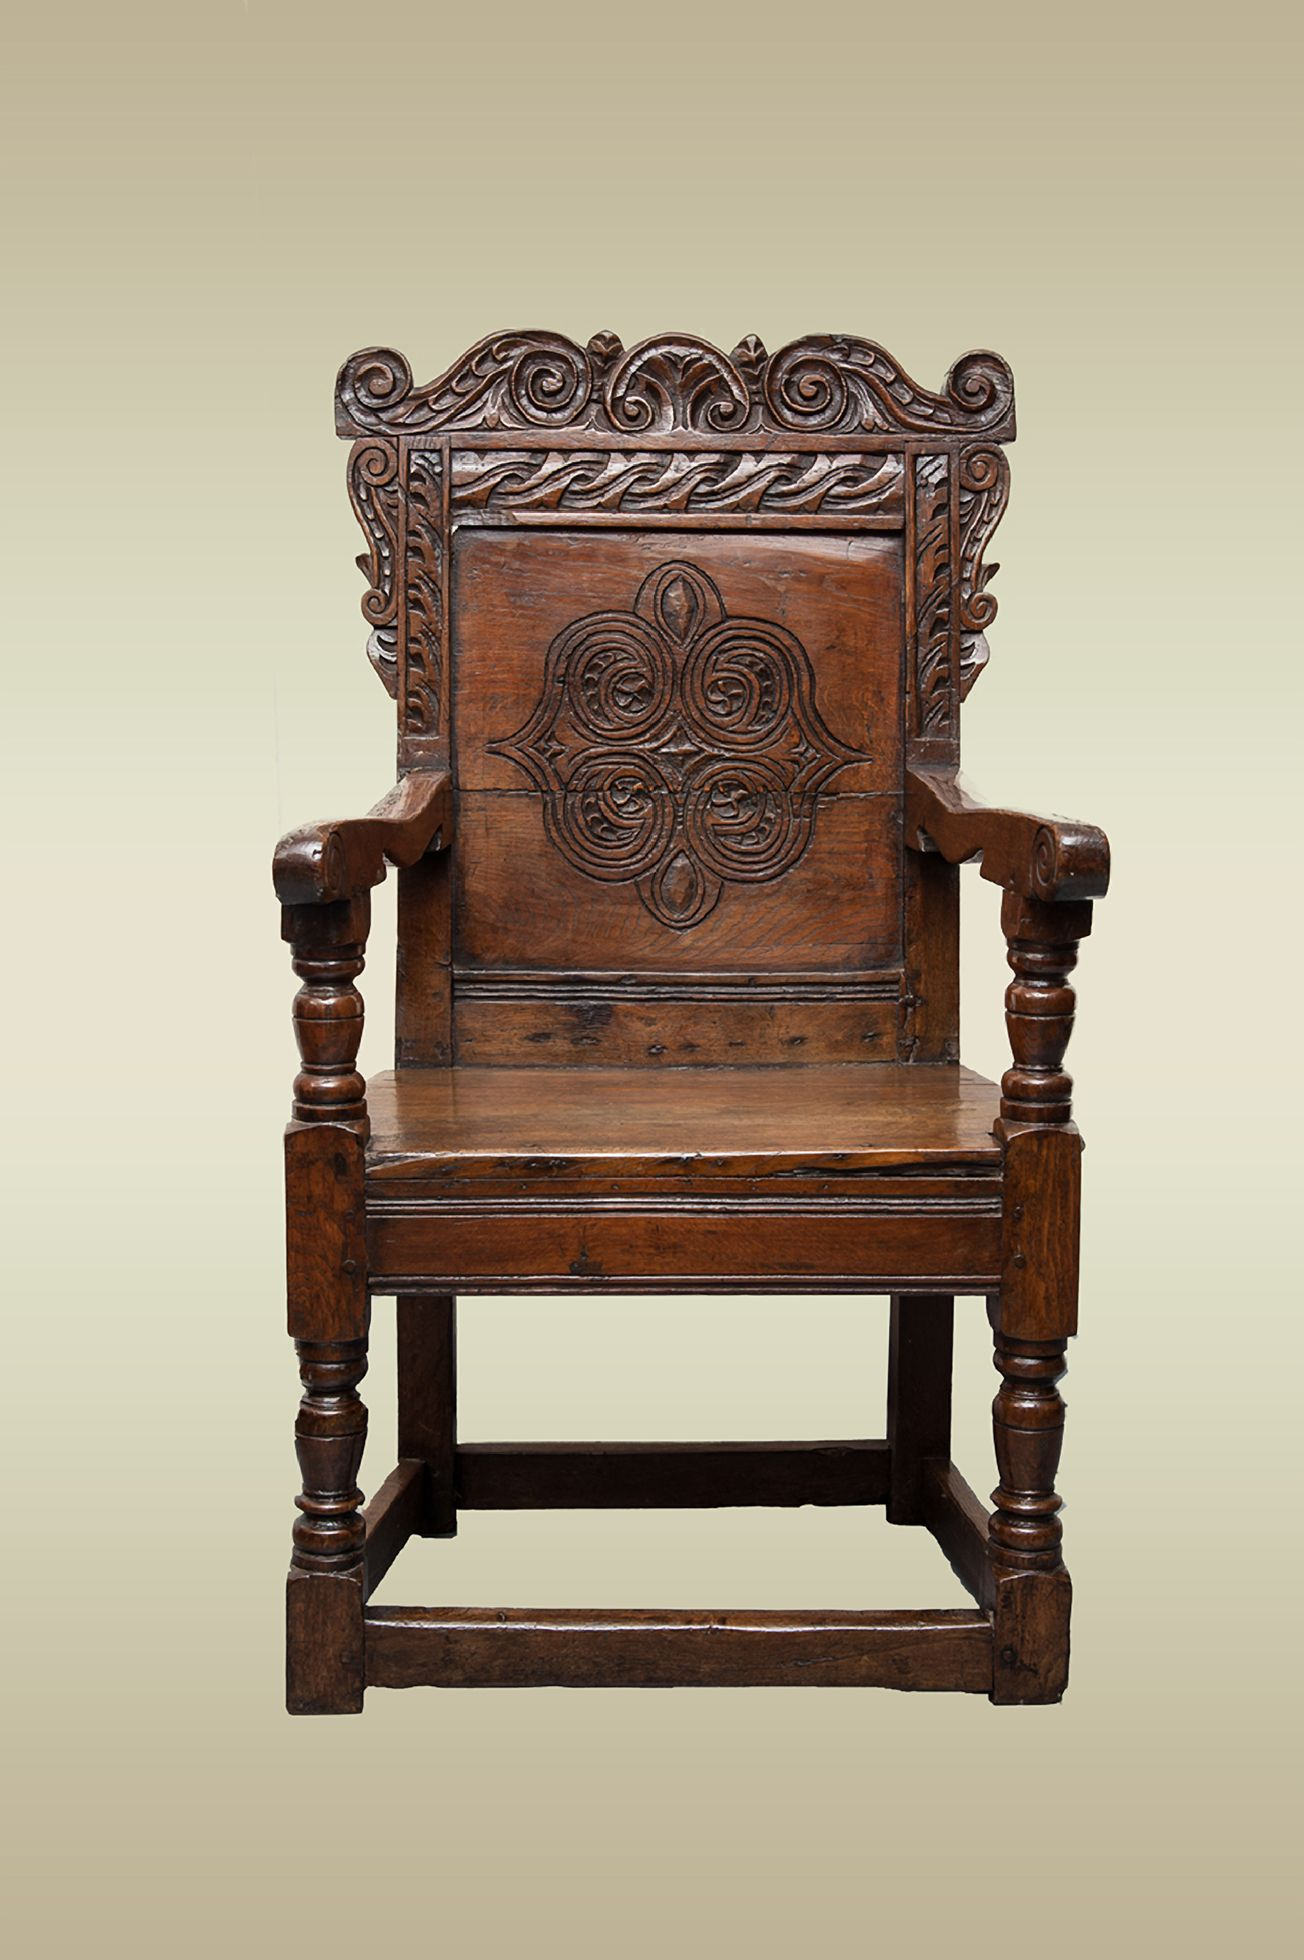 Mahogany antique furniture 2 best images collections hd for gadget - 17th Century Wainscot Chair Circa 1640 Somerset Marhamchurch Antiques